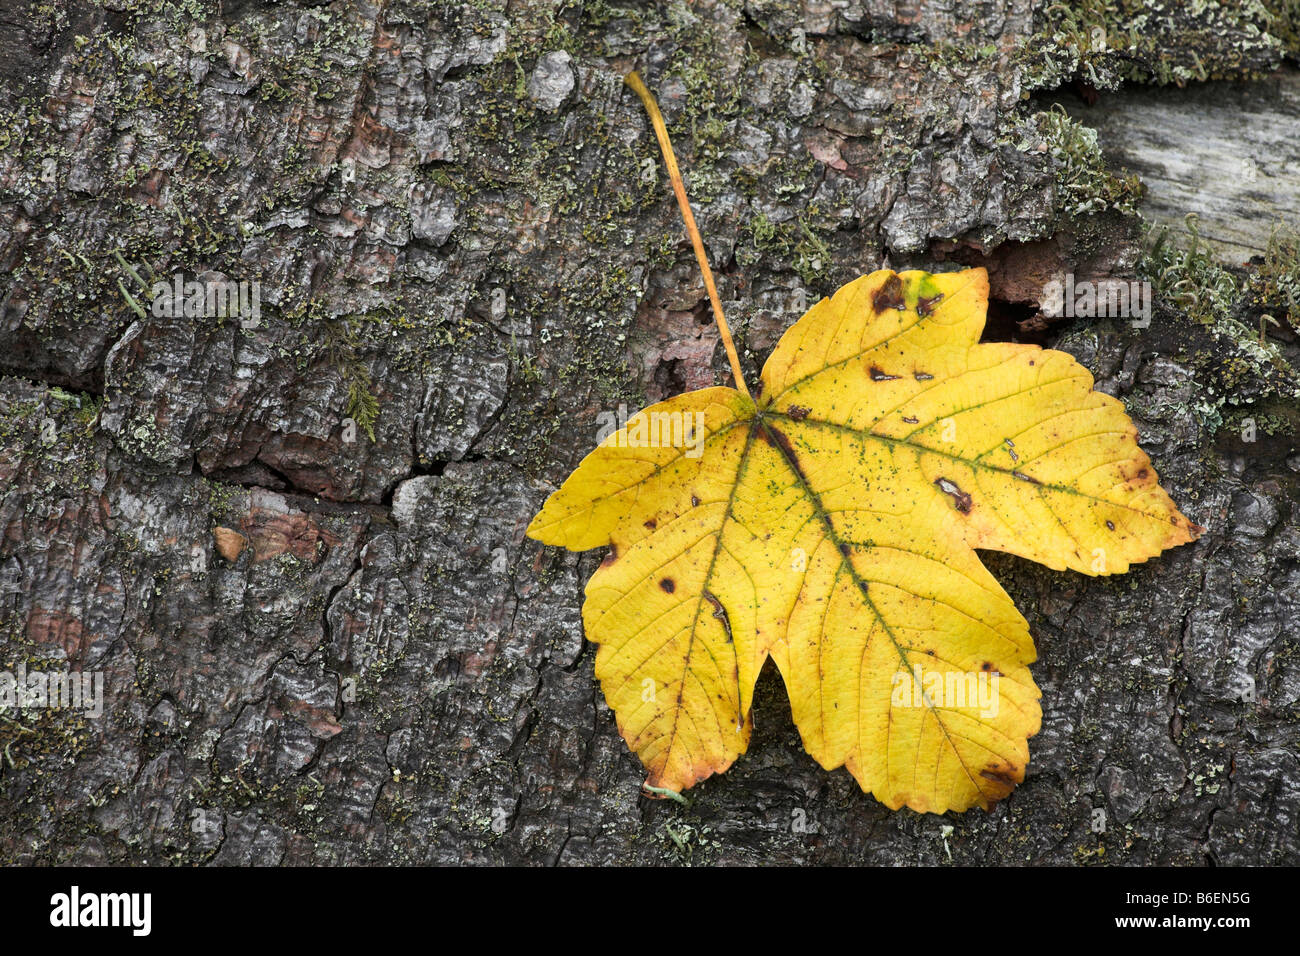 Autumnal deciduous leaf on a bark surface, Eyachtal Valley, Baden-Wuerttemberg, Germany, Europe - Stock Image